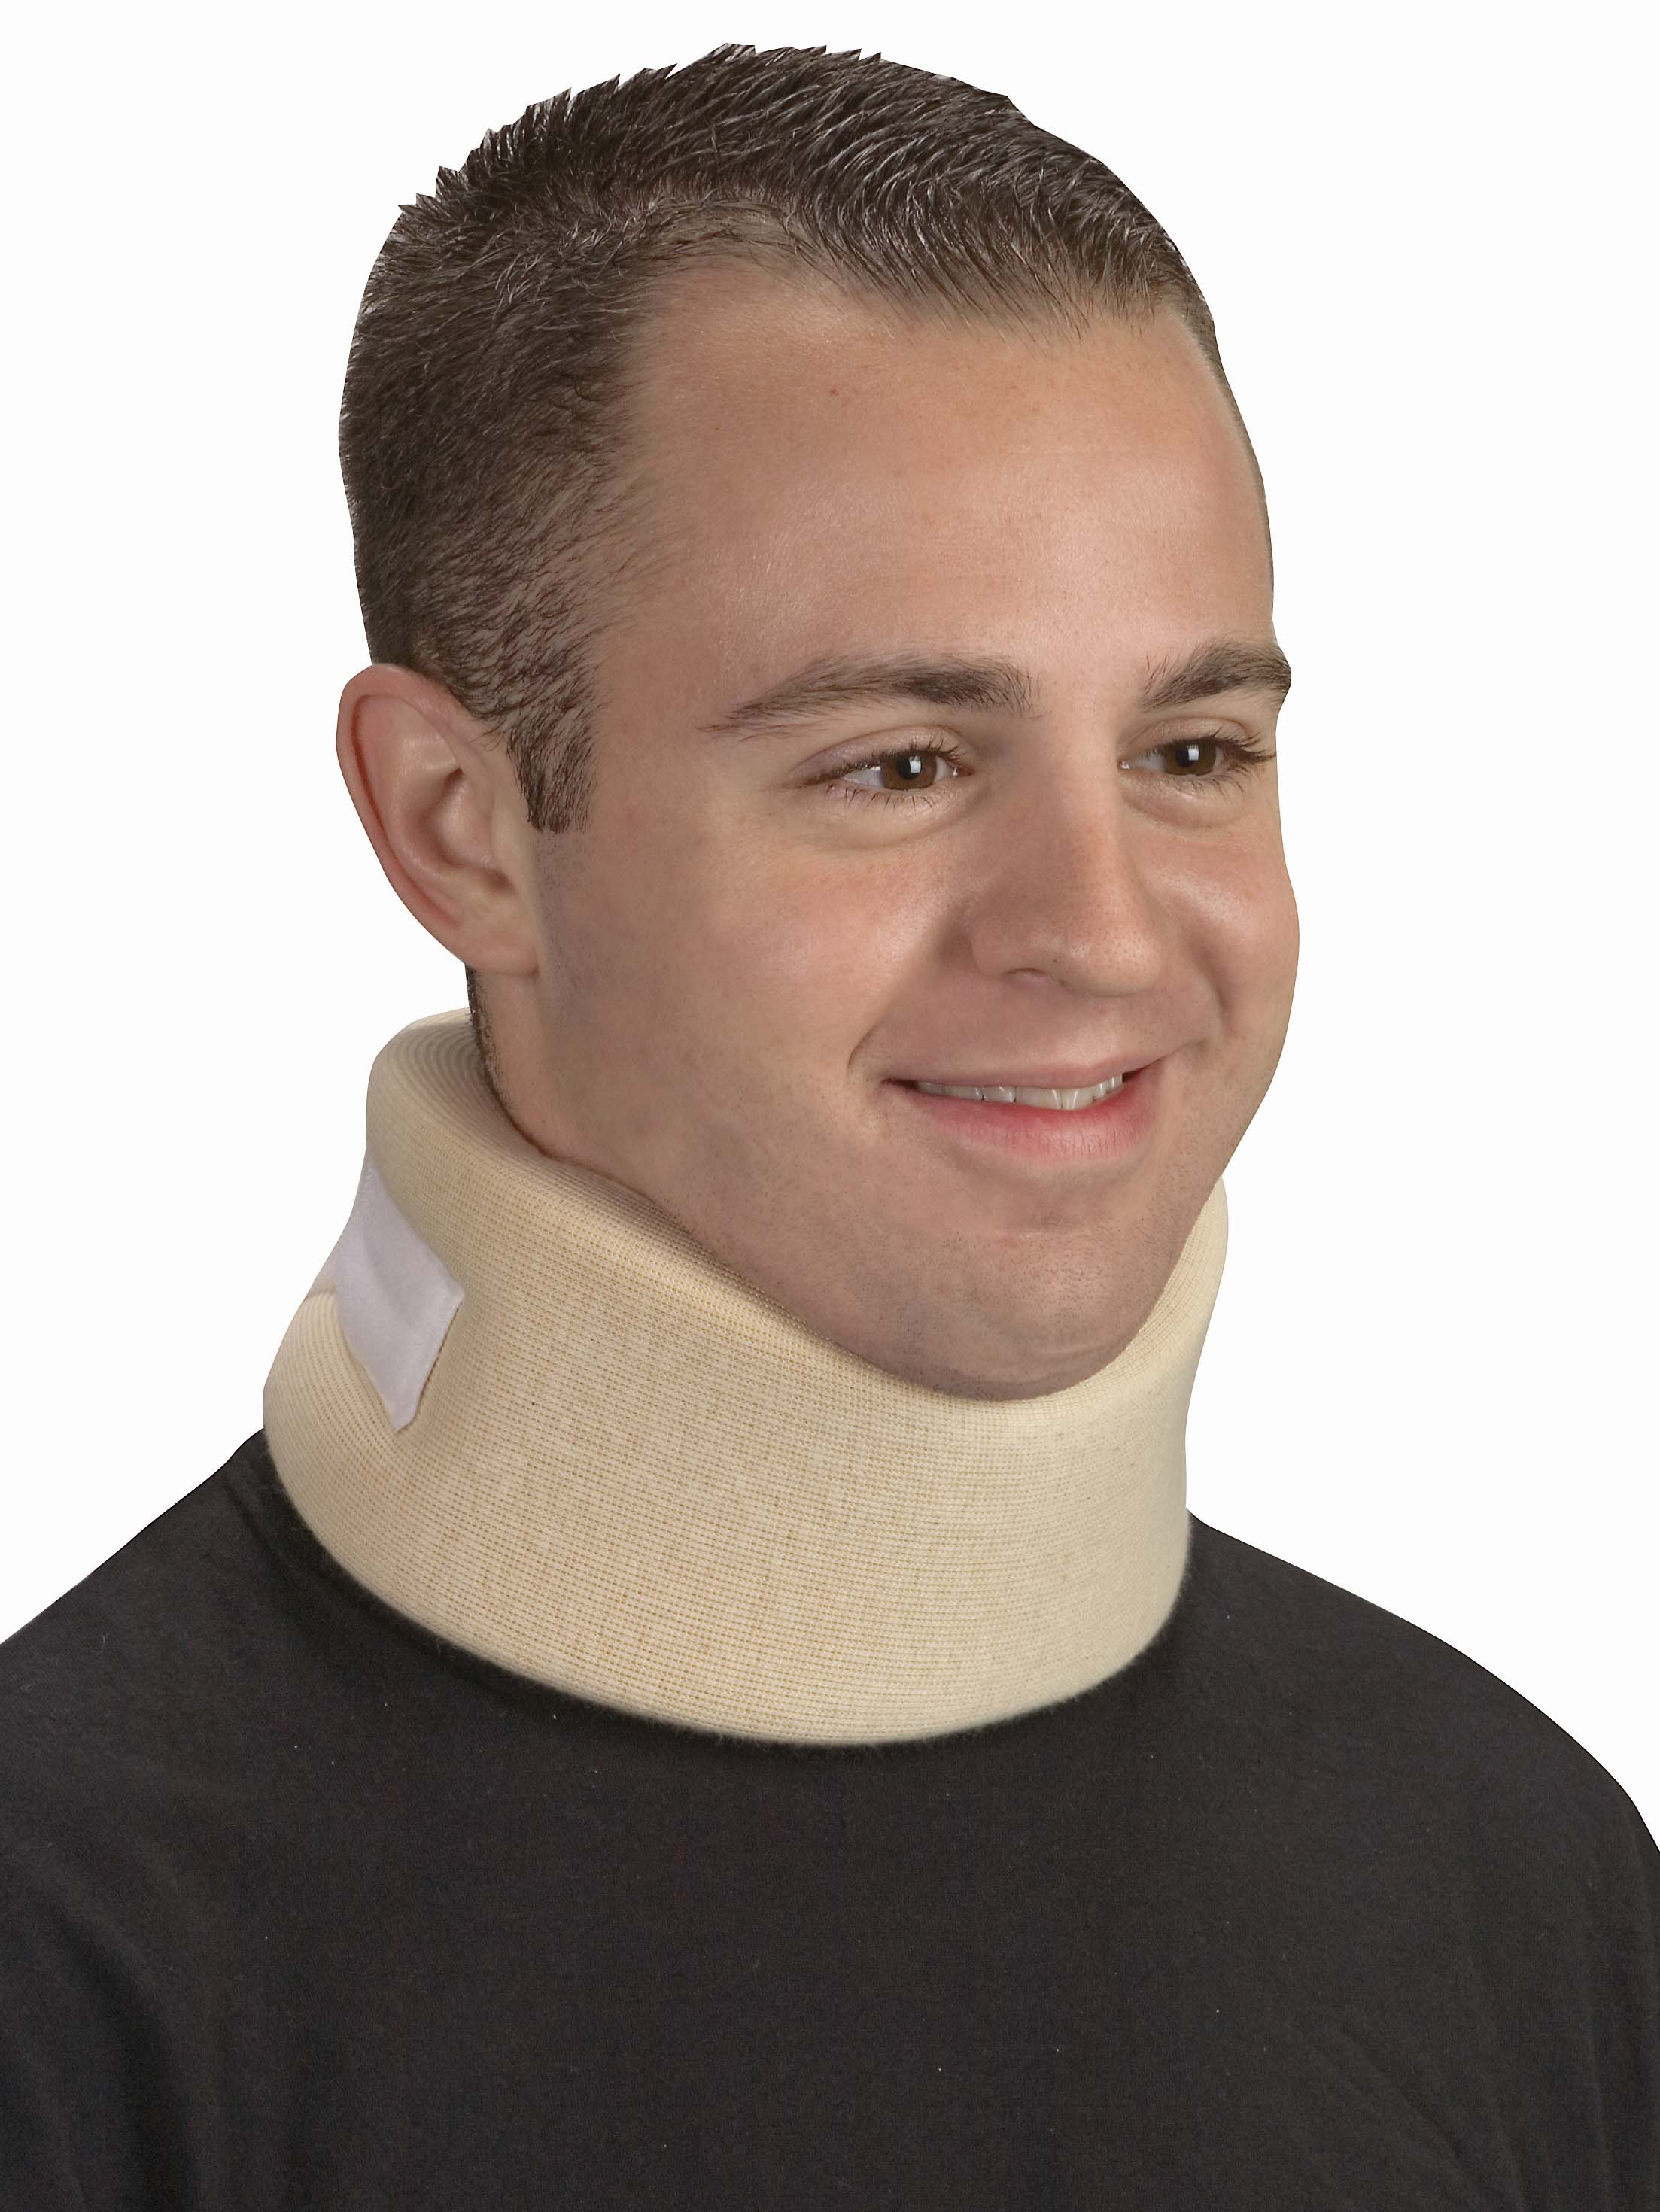 universal-firm-foam-cervical-collar-3-1-2-631-6057-0043-lr-2.jpg